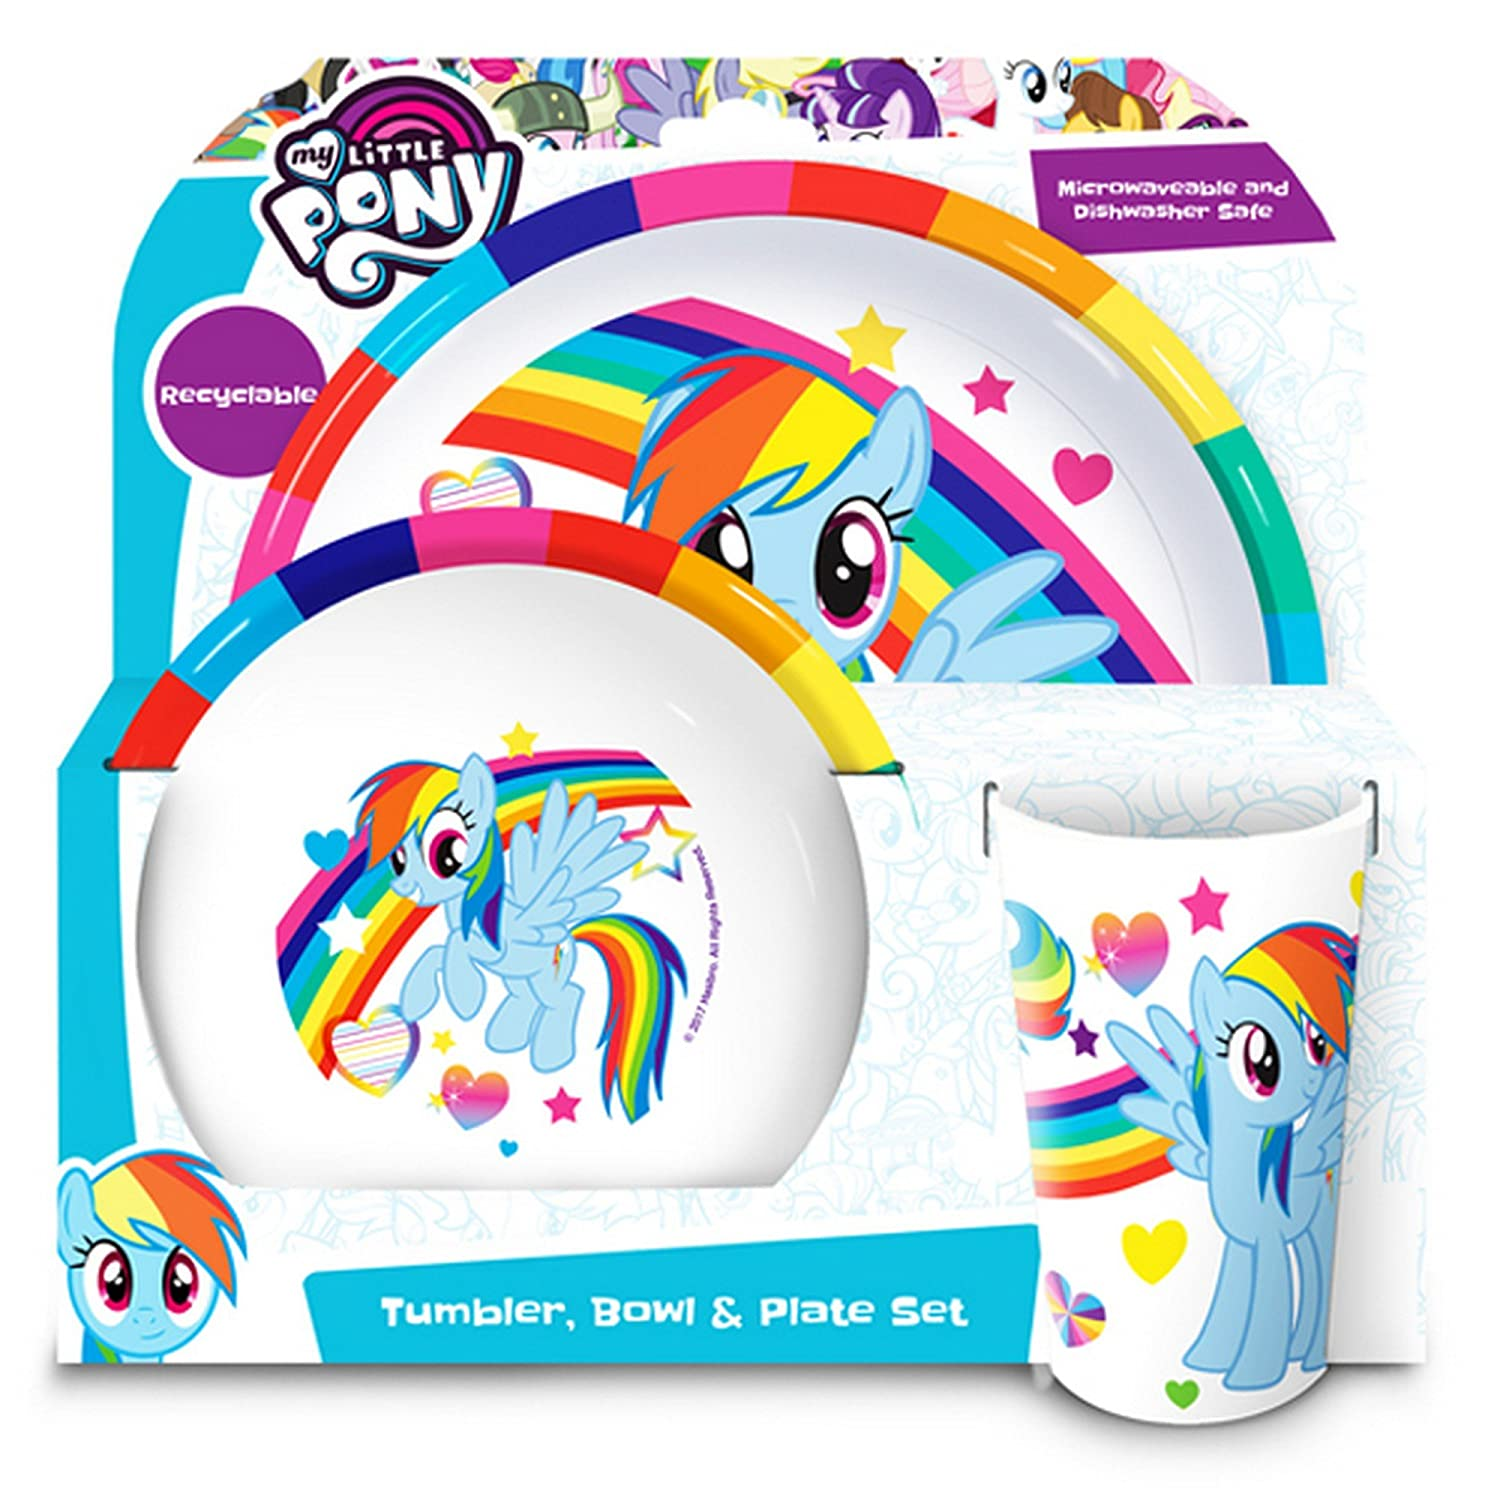 My Little Pony Official Childrens Girls 3 Piece Dinner Set (One Size) (White) UTSG11390_1